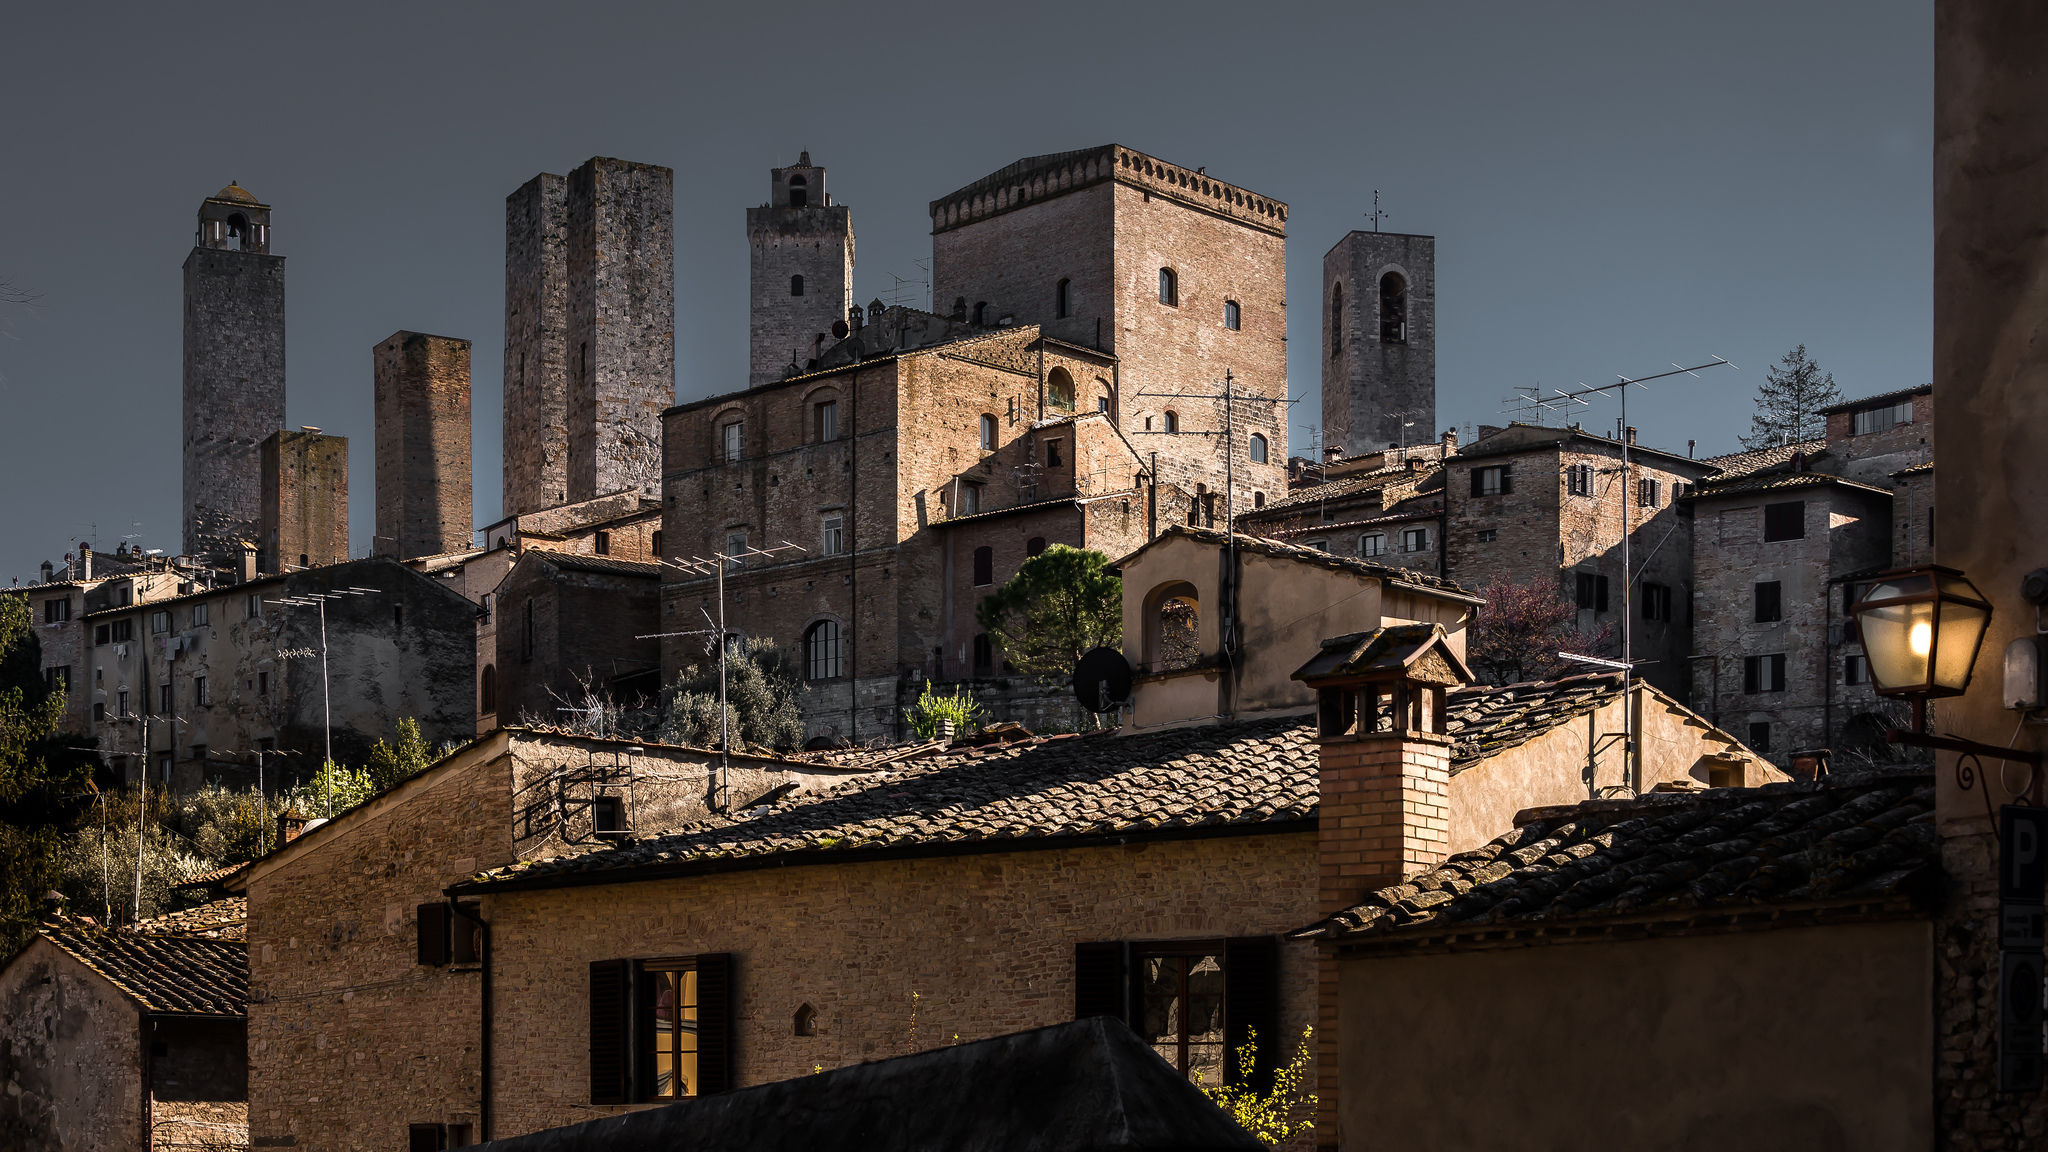 San Gimignano - San Gimignano between towers and hills - Tuscany, Beautiful Everywhere